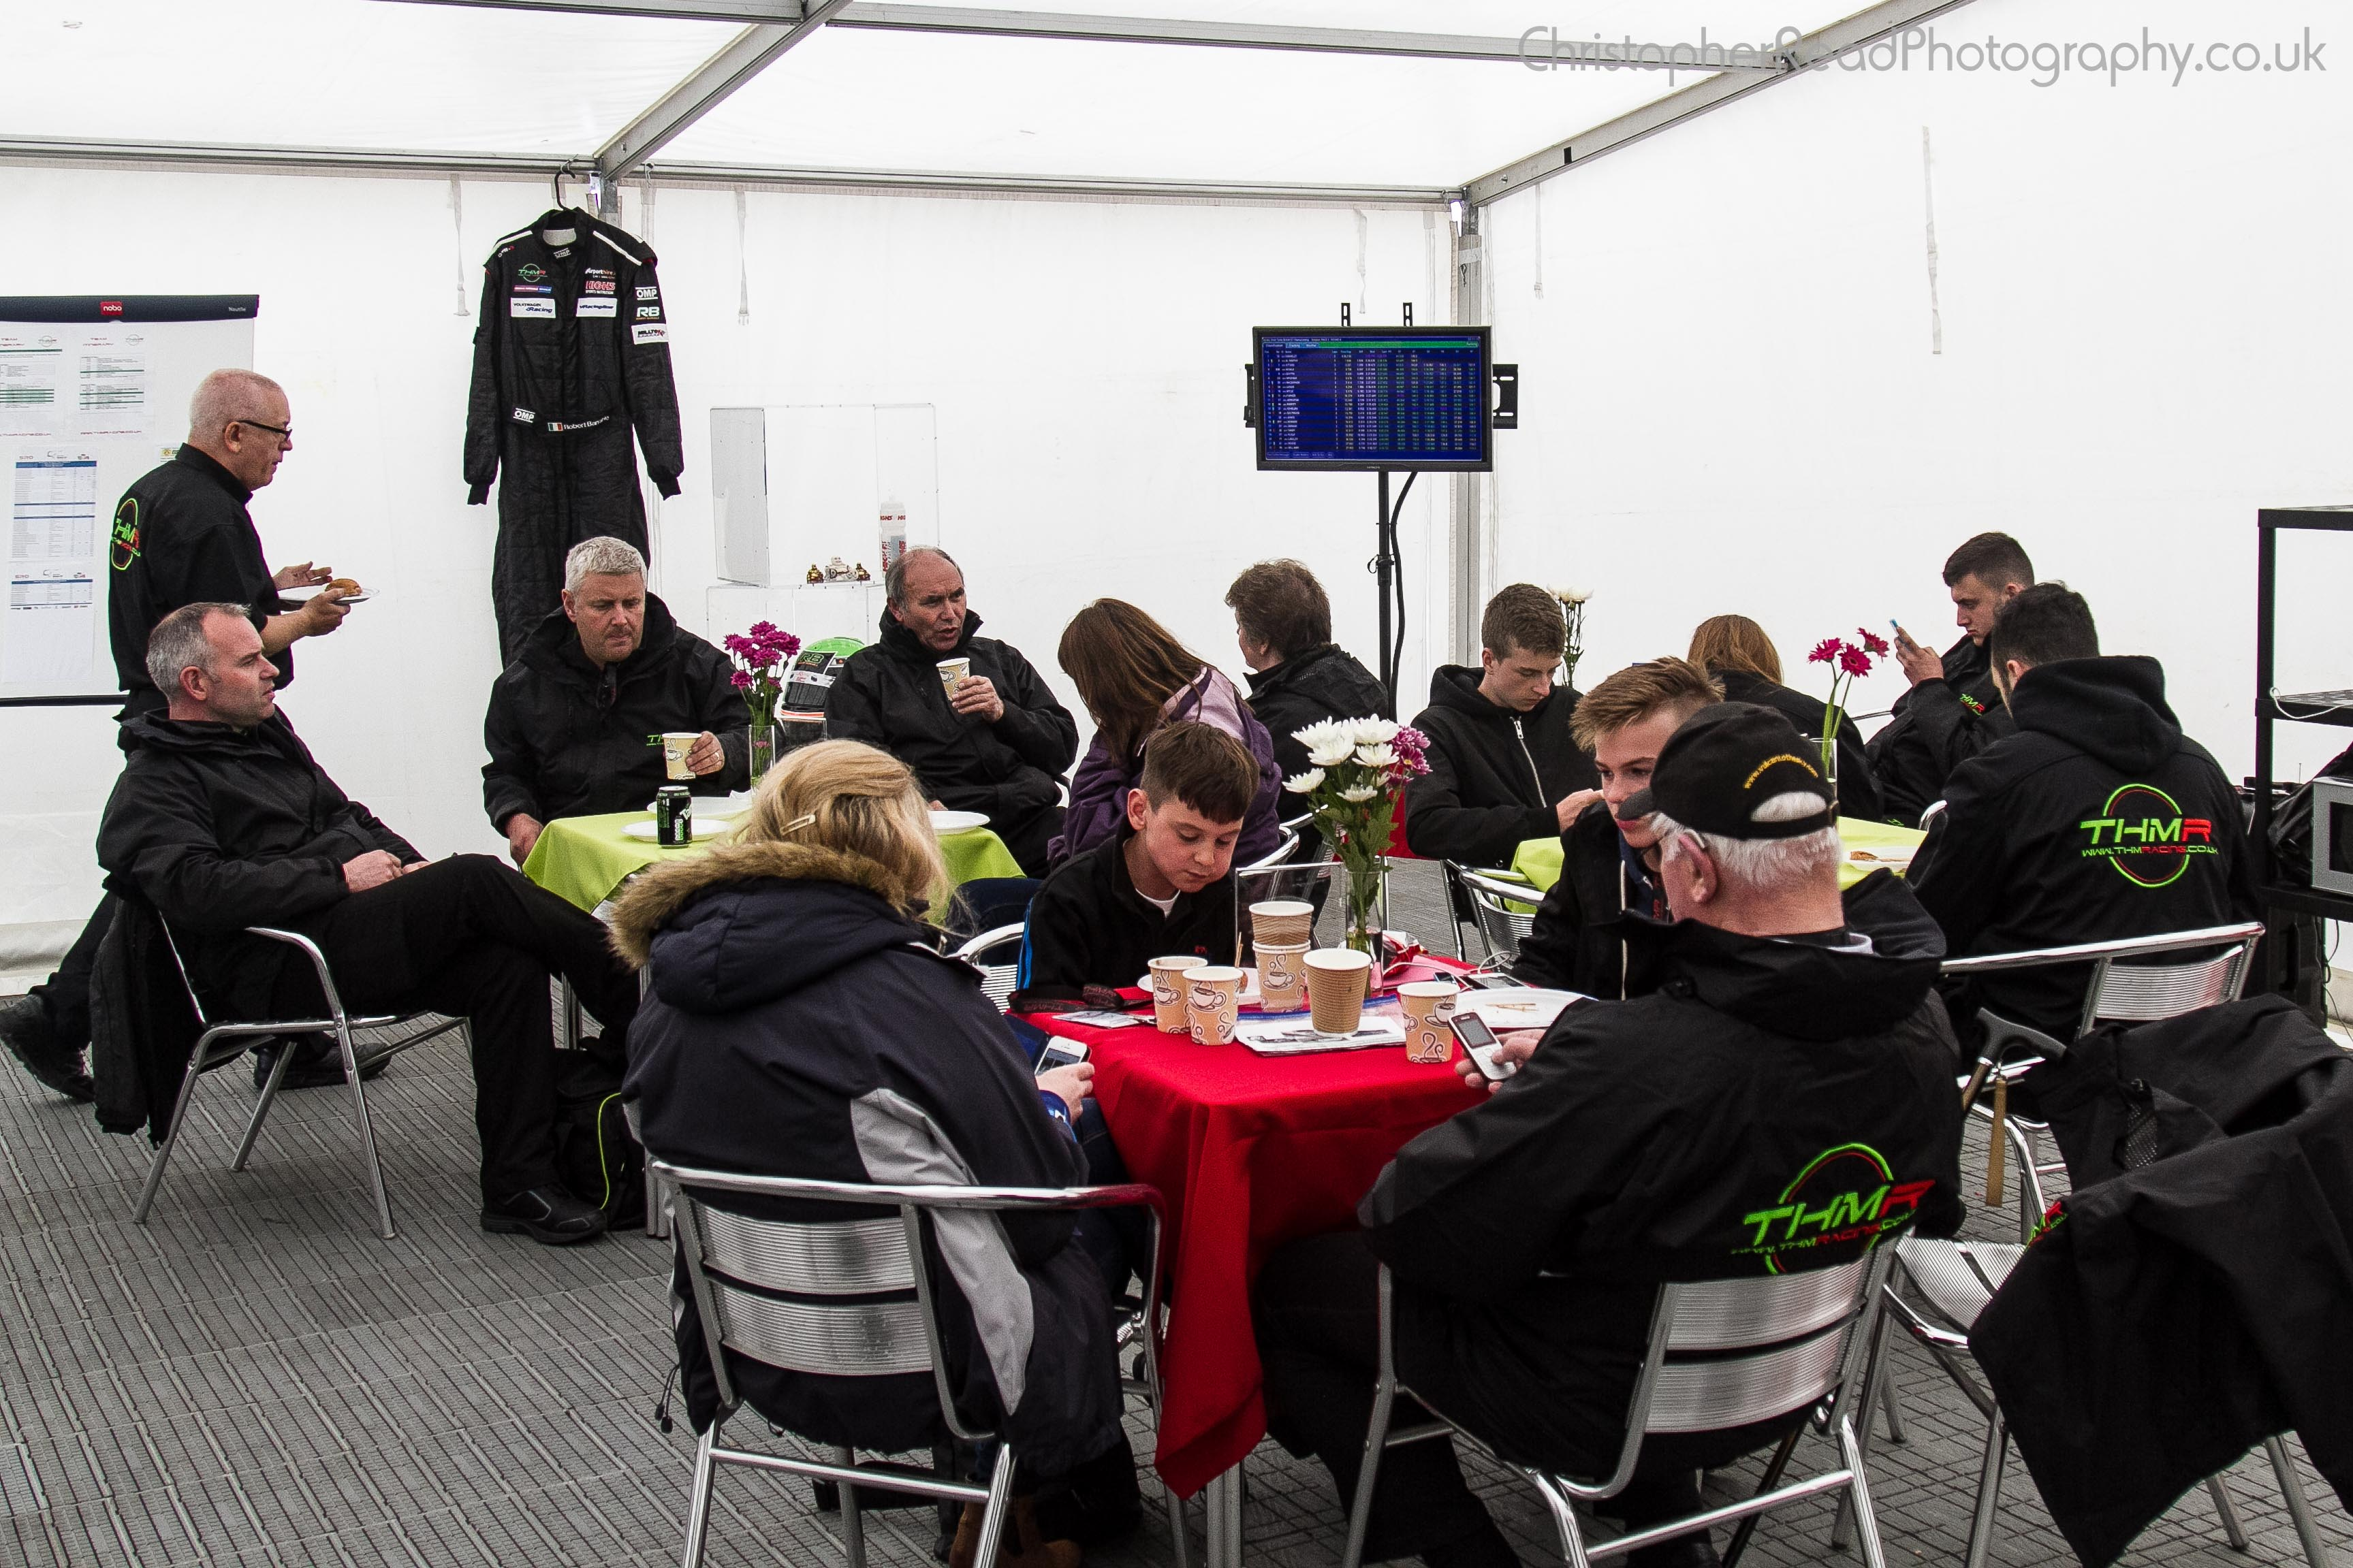 THM Racing - team and VIP guests enjoying some down time!